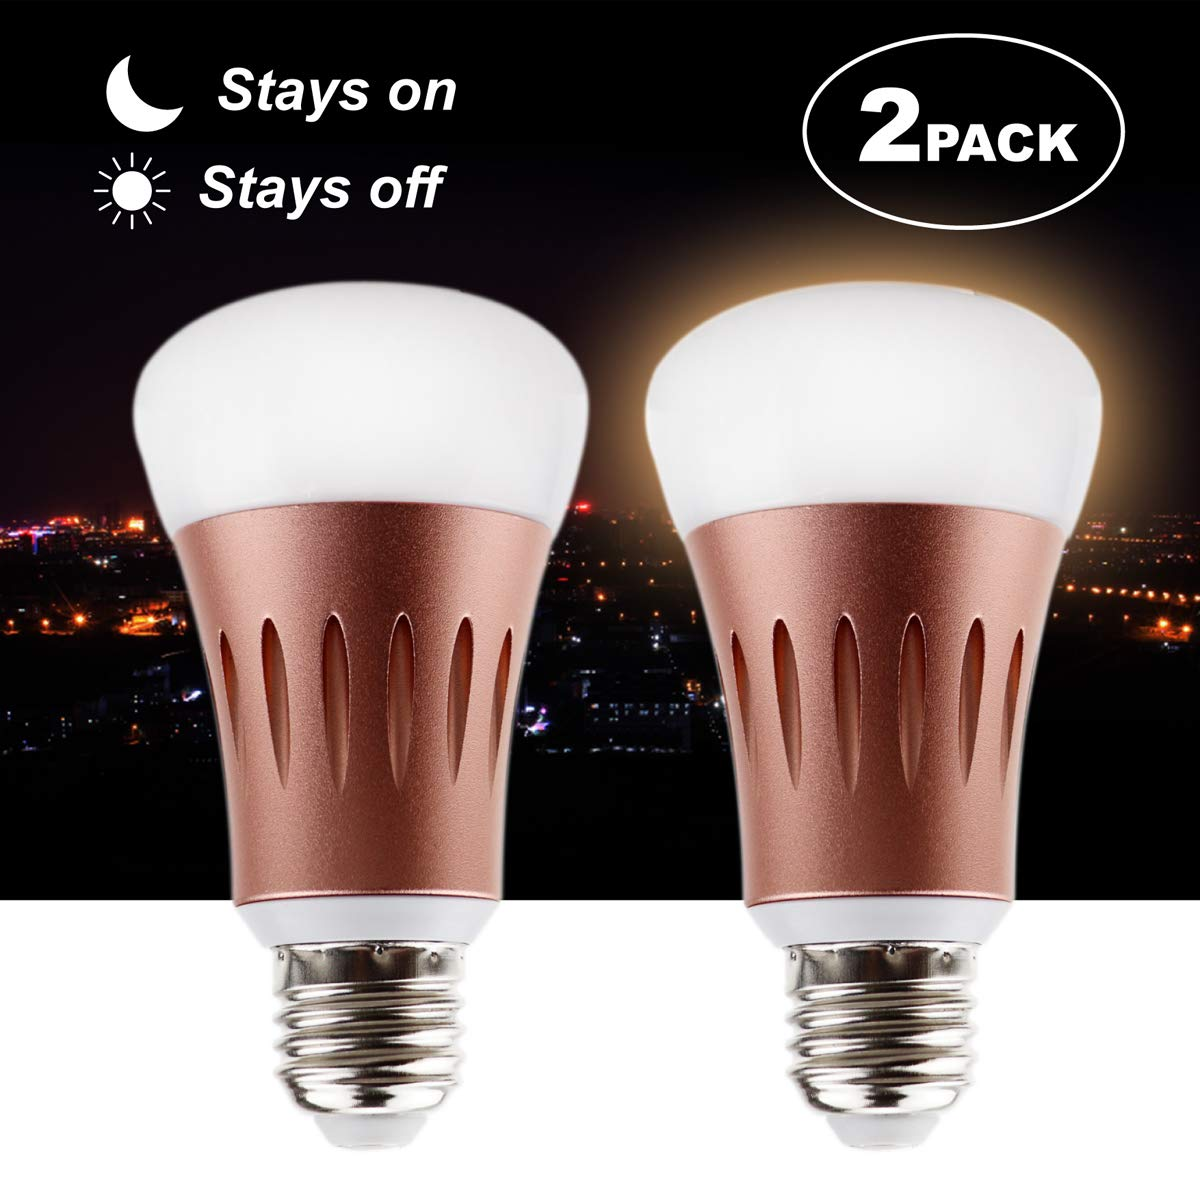 Dusk to Dawn Light Bulb,KK.BOL 7W Sensor LED Light Bulb with Dusk Till Dawn Auto On/Off, Outdoor/Indoor Security Lighting Porch Patio Garage Hallway (E26/E27, Daylight White 6000K,2 Pack)